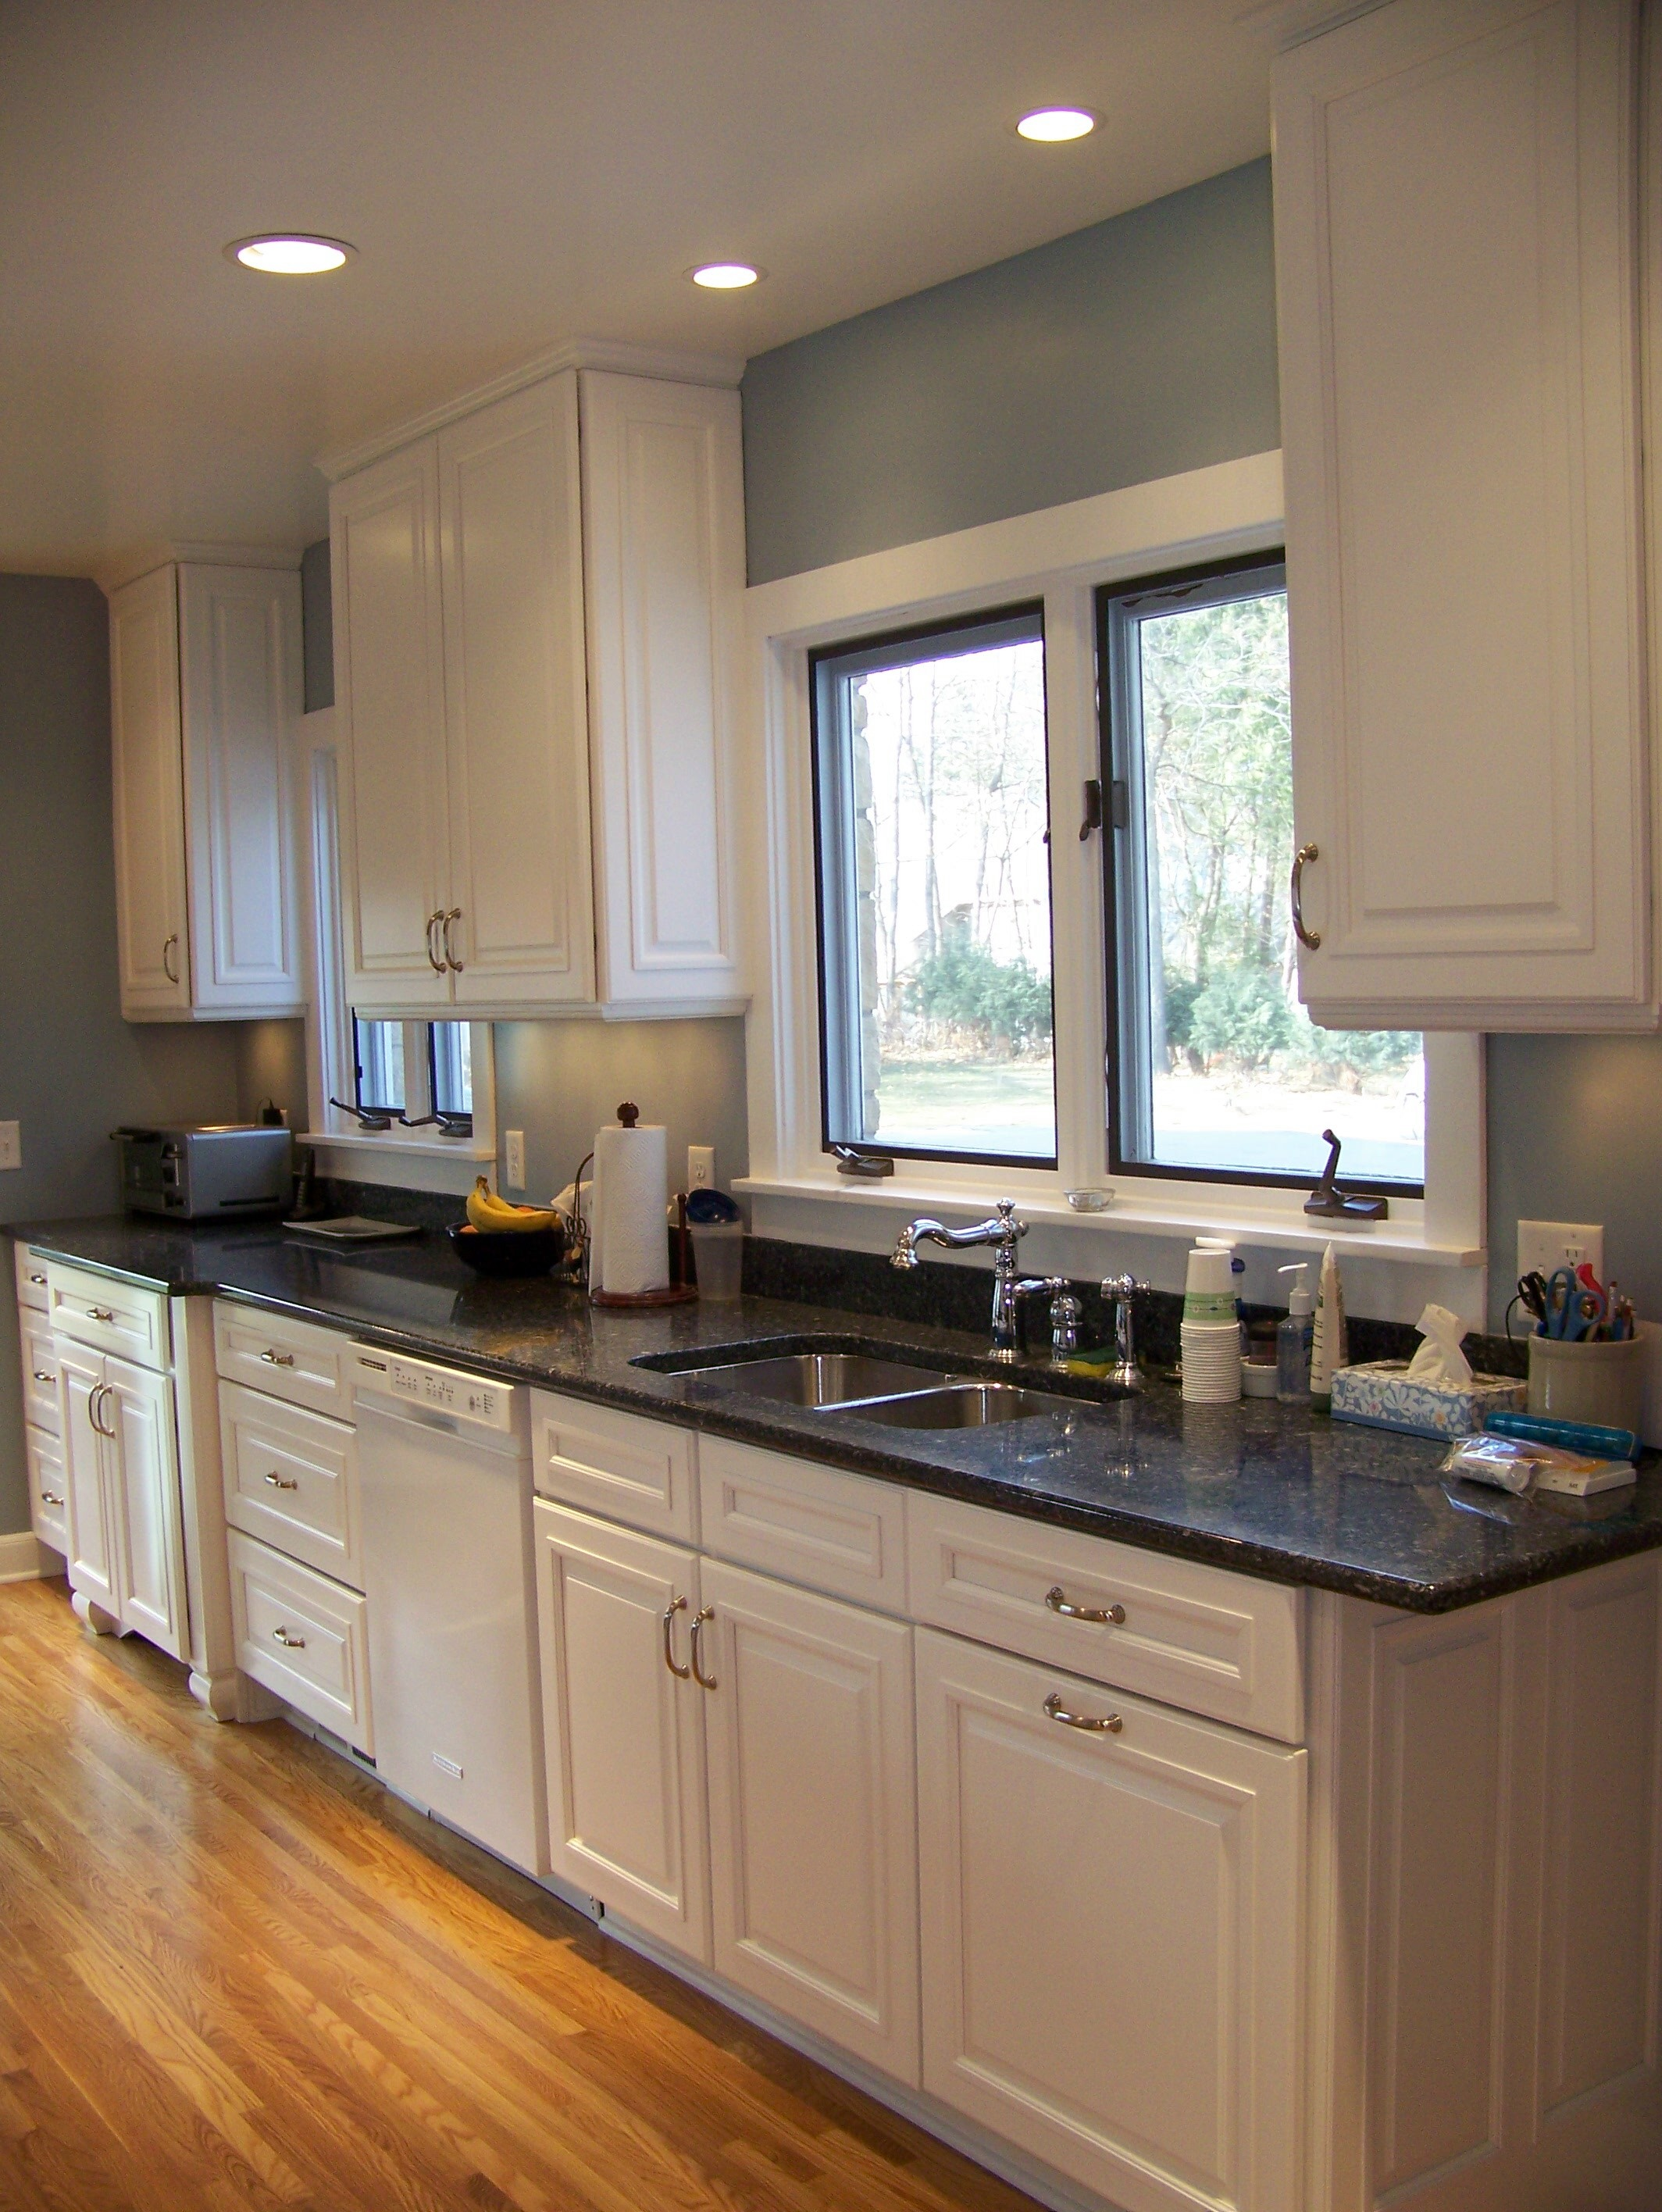 Newly remodeled kitchen photos schmidt homes for Kitchen remodel images